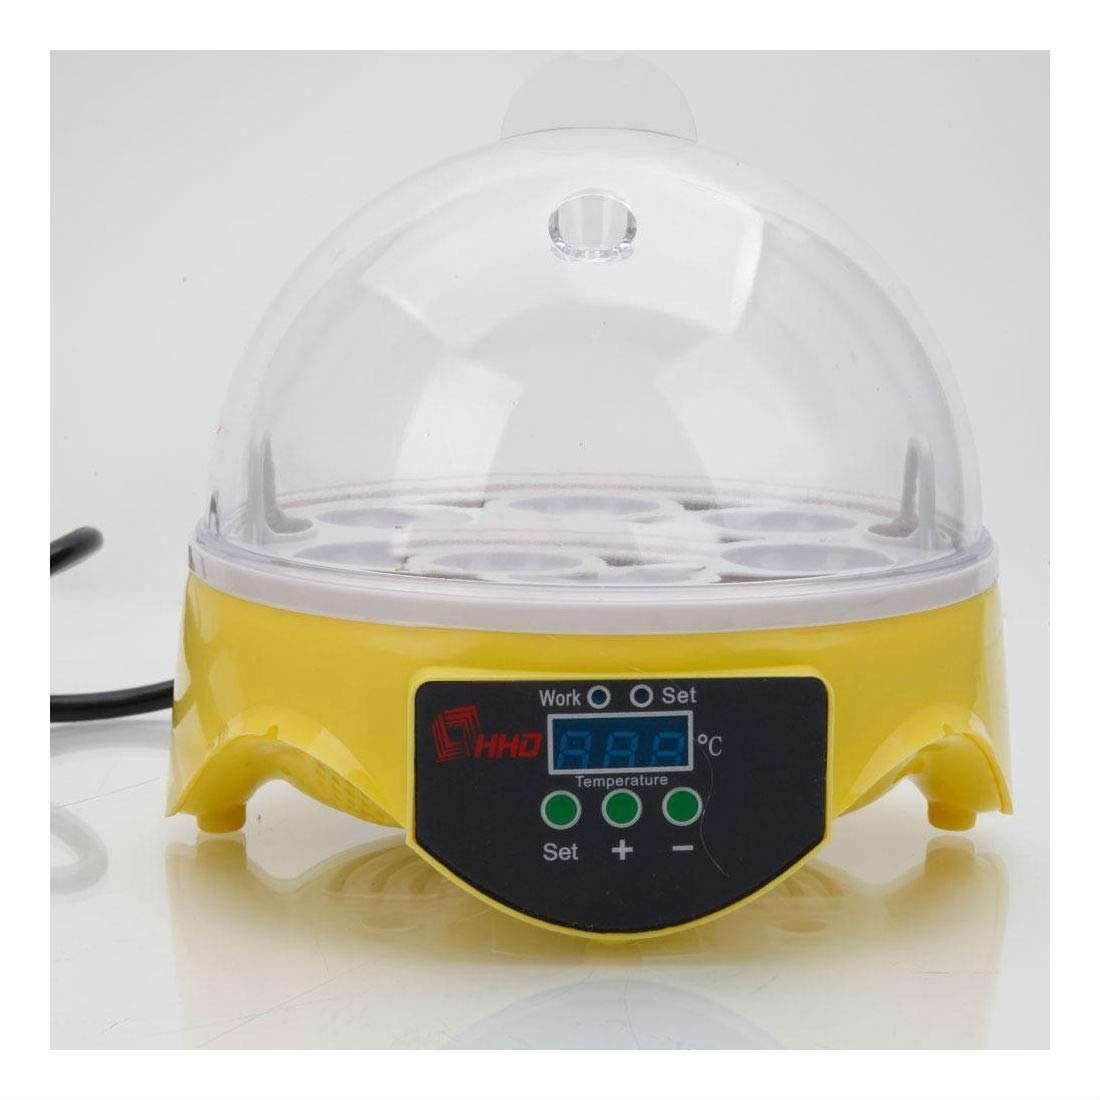 Digital Mini 7 Egg Incubator Poultry Bird Pet Hatcher Clear Temperature Control by Unknown (Image #1)